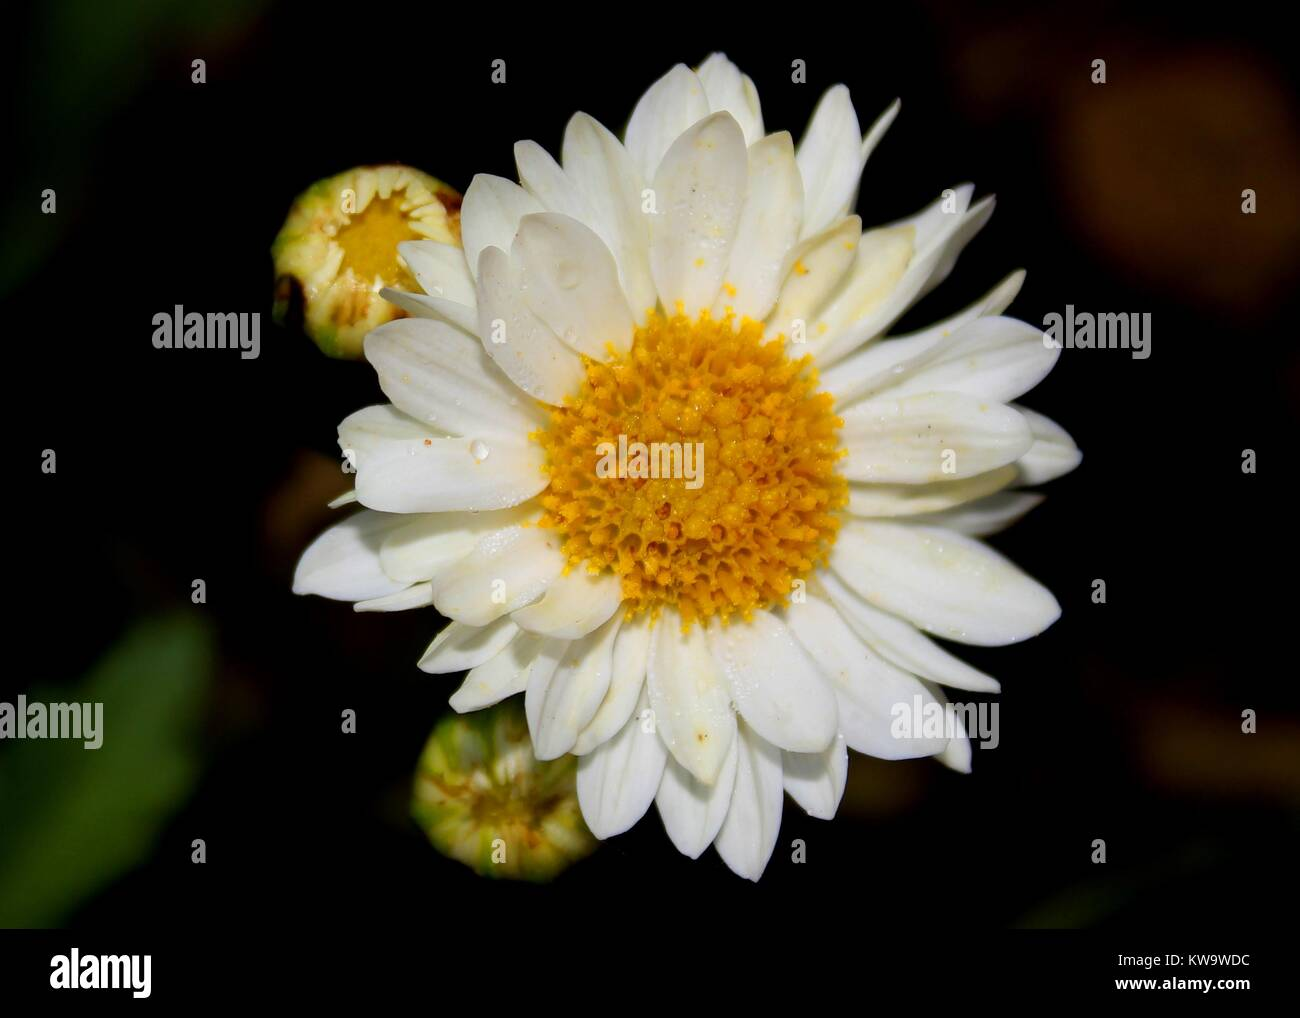 Common Daisy Flower Bud Stock Photos Common Daisy Flower Bud Stock